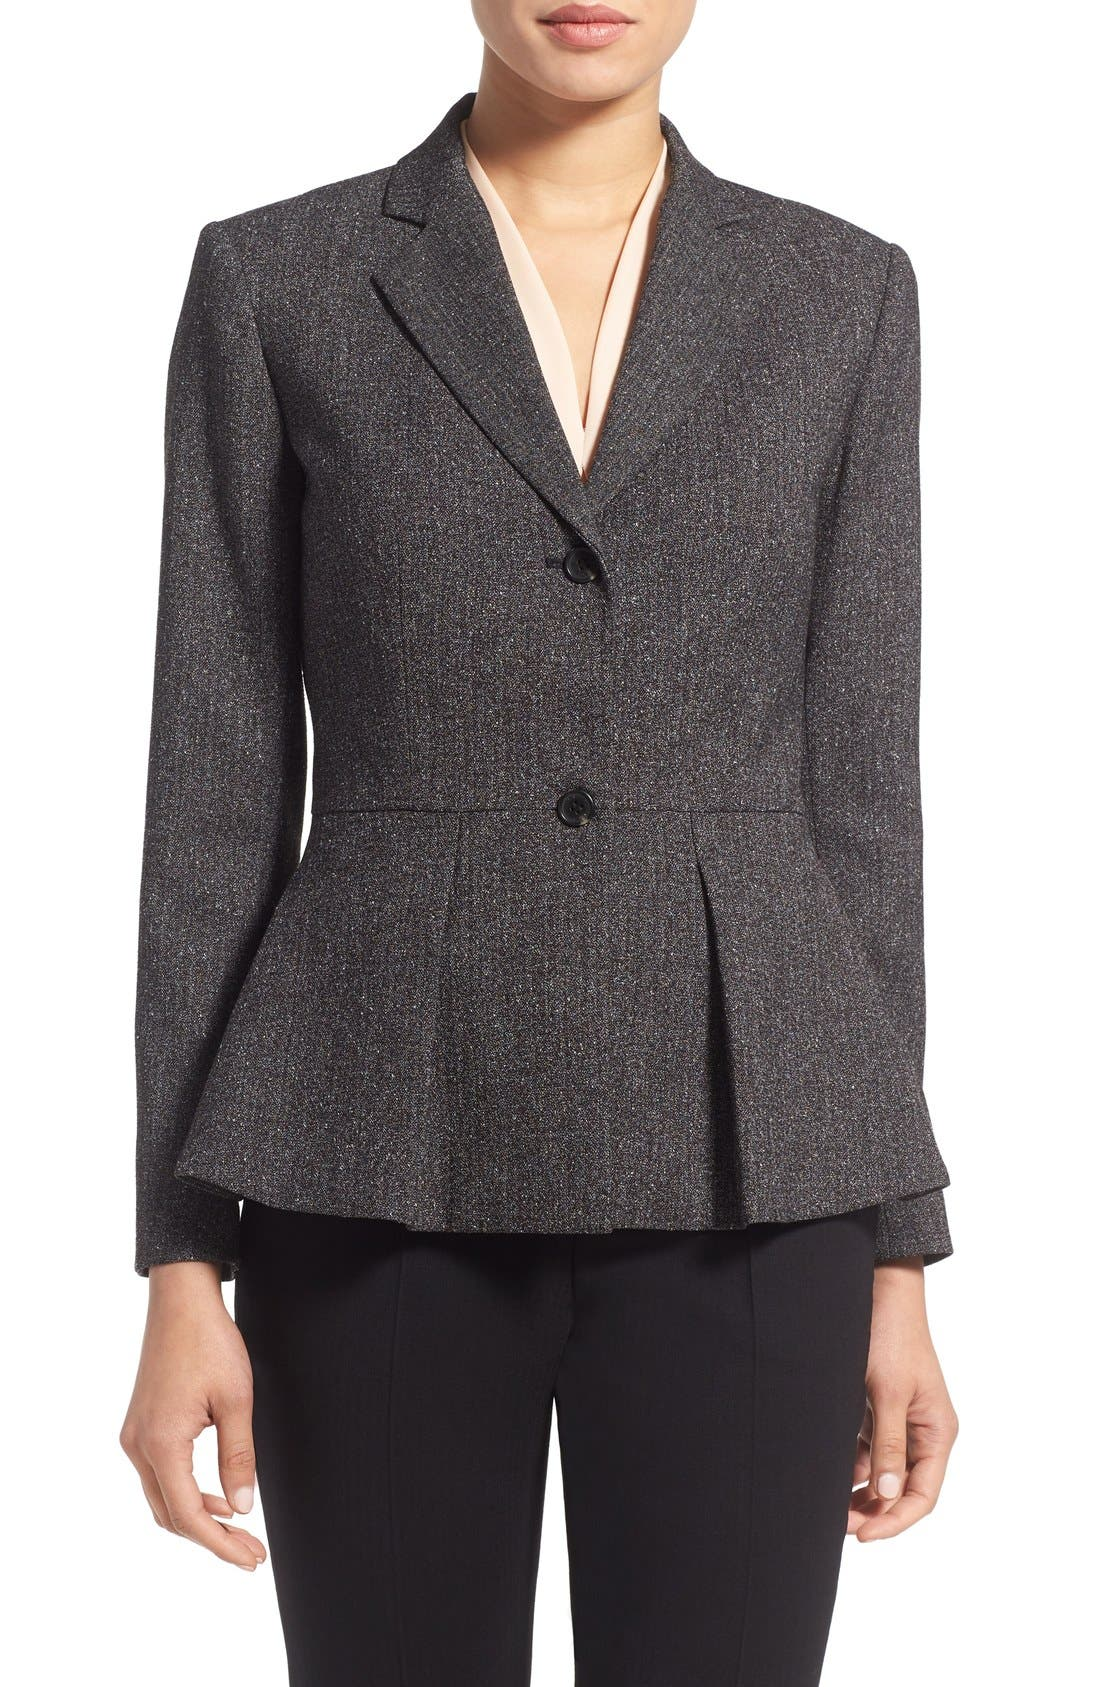 Main Image - Vince Camuto Tweed Peplum Blazer (Regular & Petite)